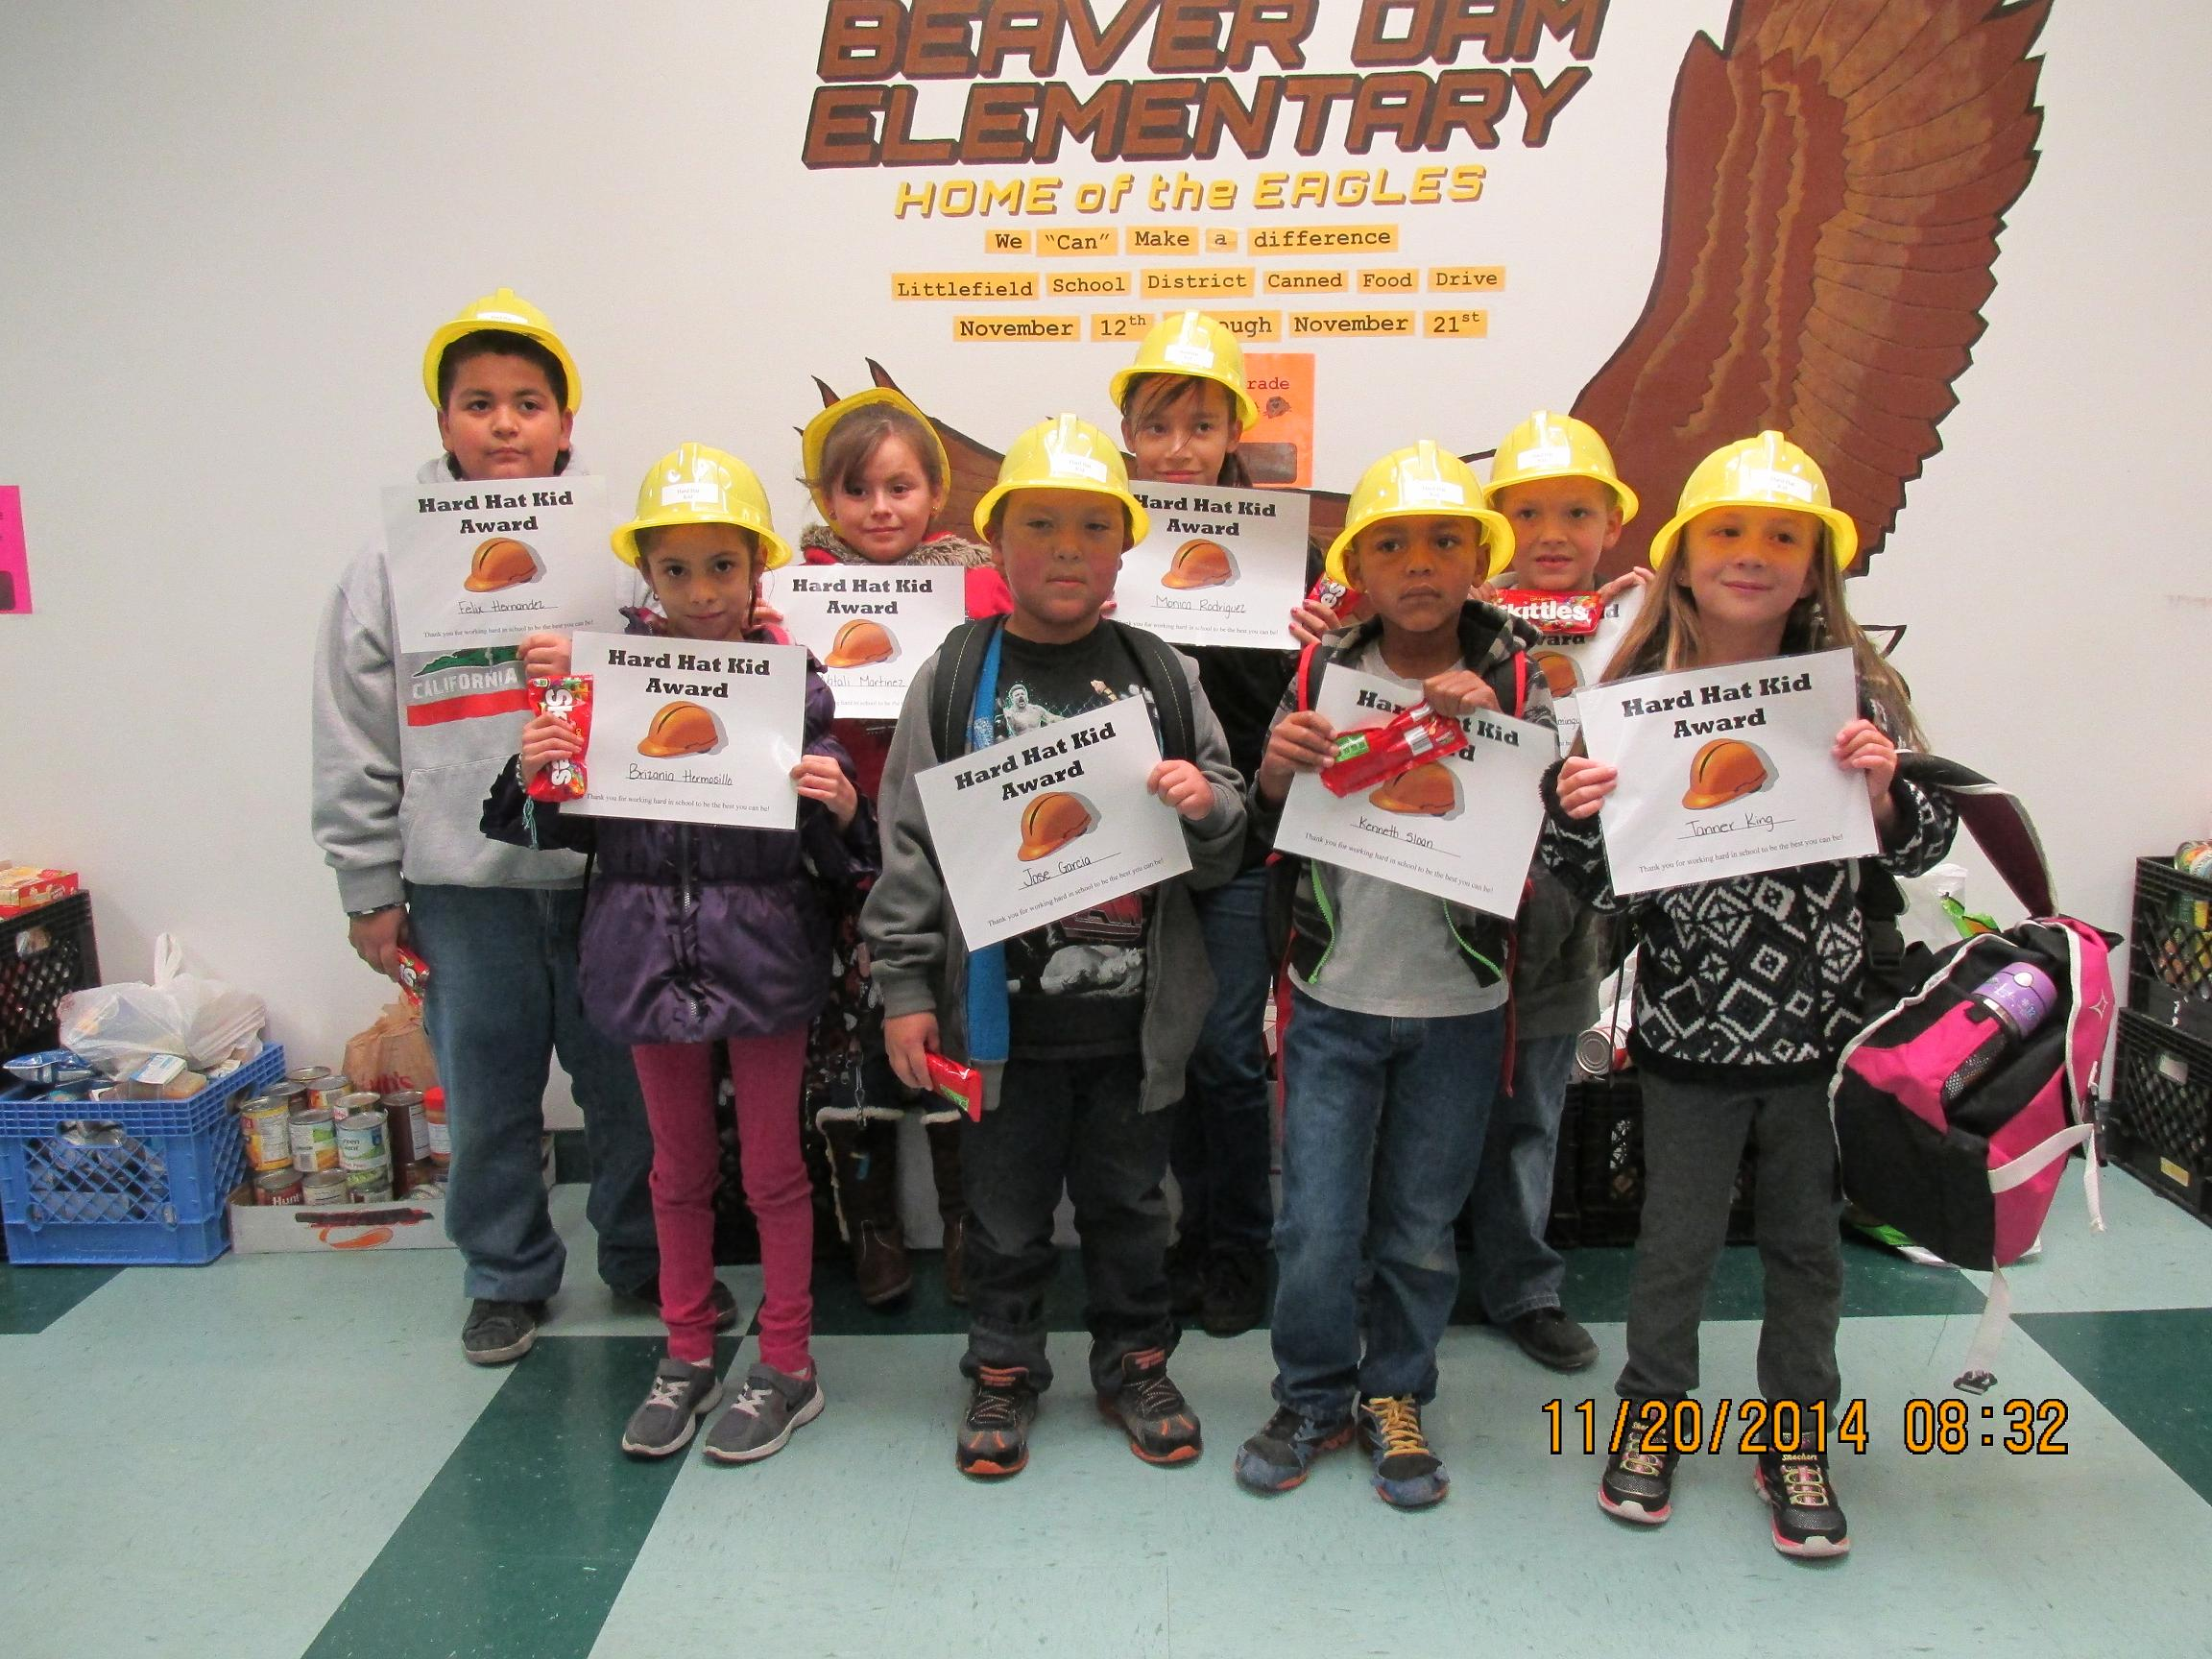 Hard Hat Heroes and Pop Run at Beaver Dam Elementary School